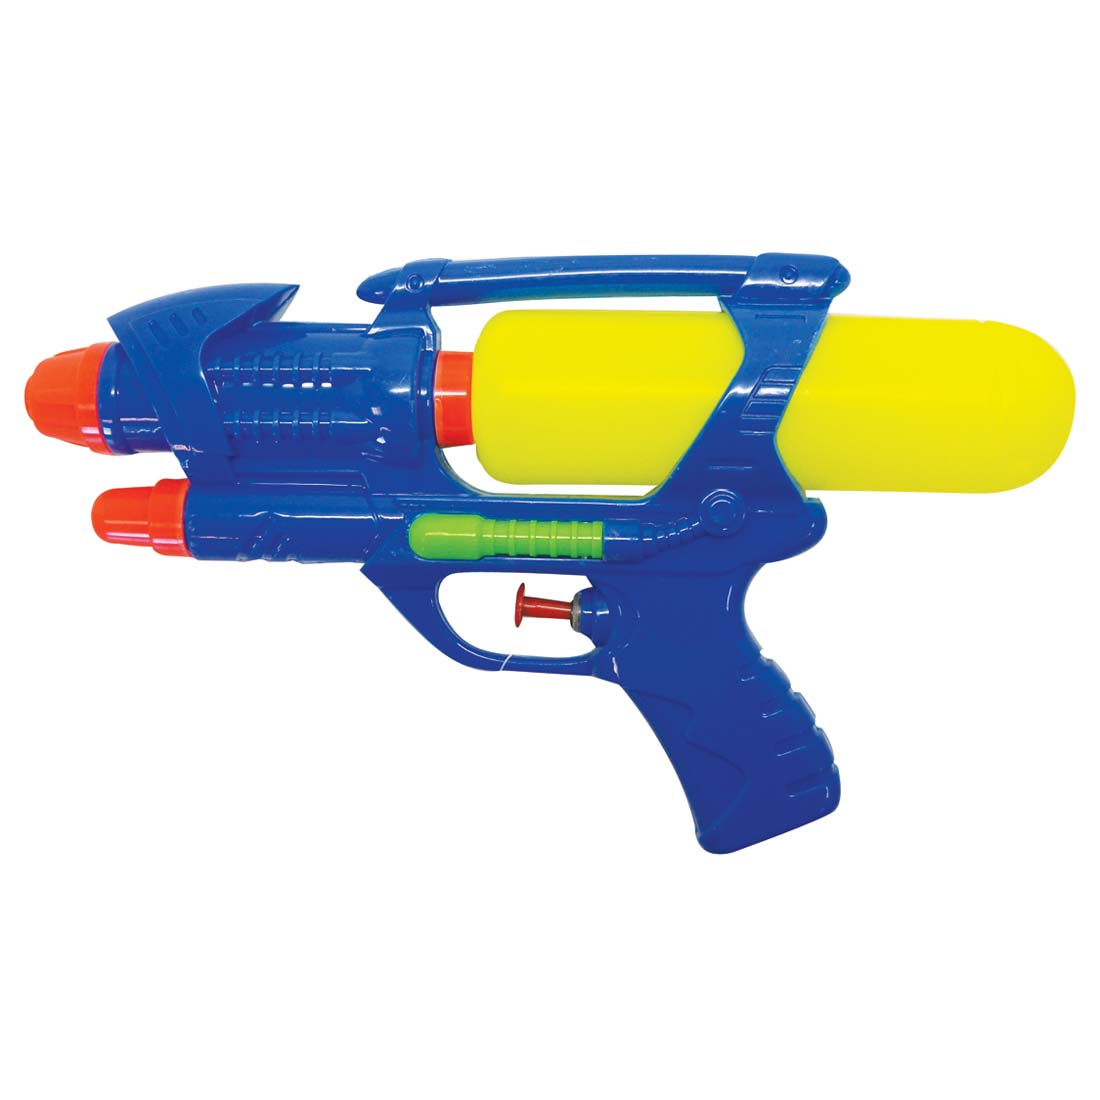 View WATER GUN 10 INCH ASSORTED COLORS STYLE 2